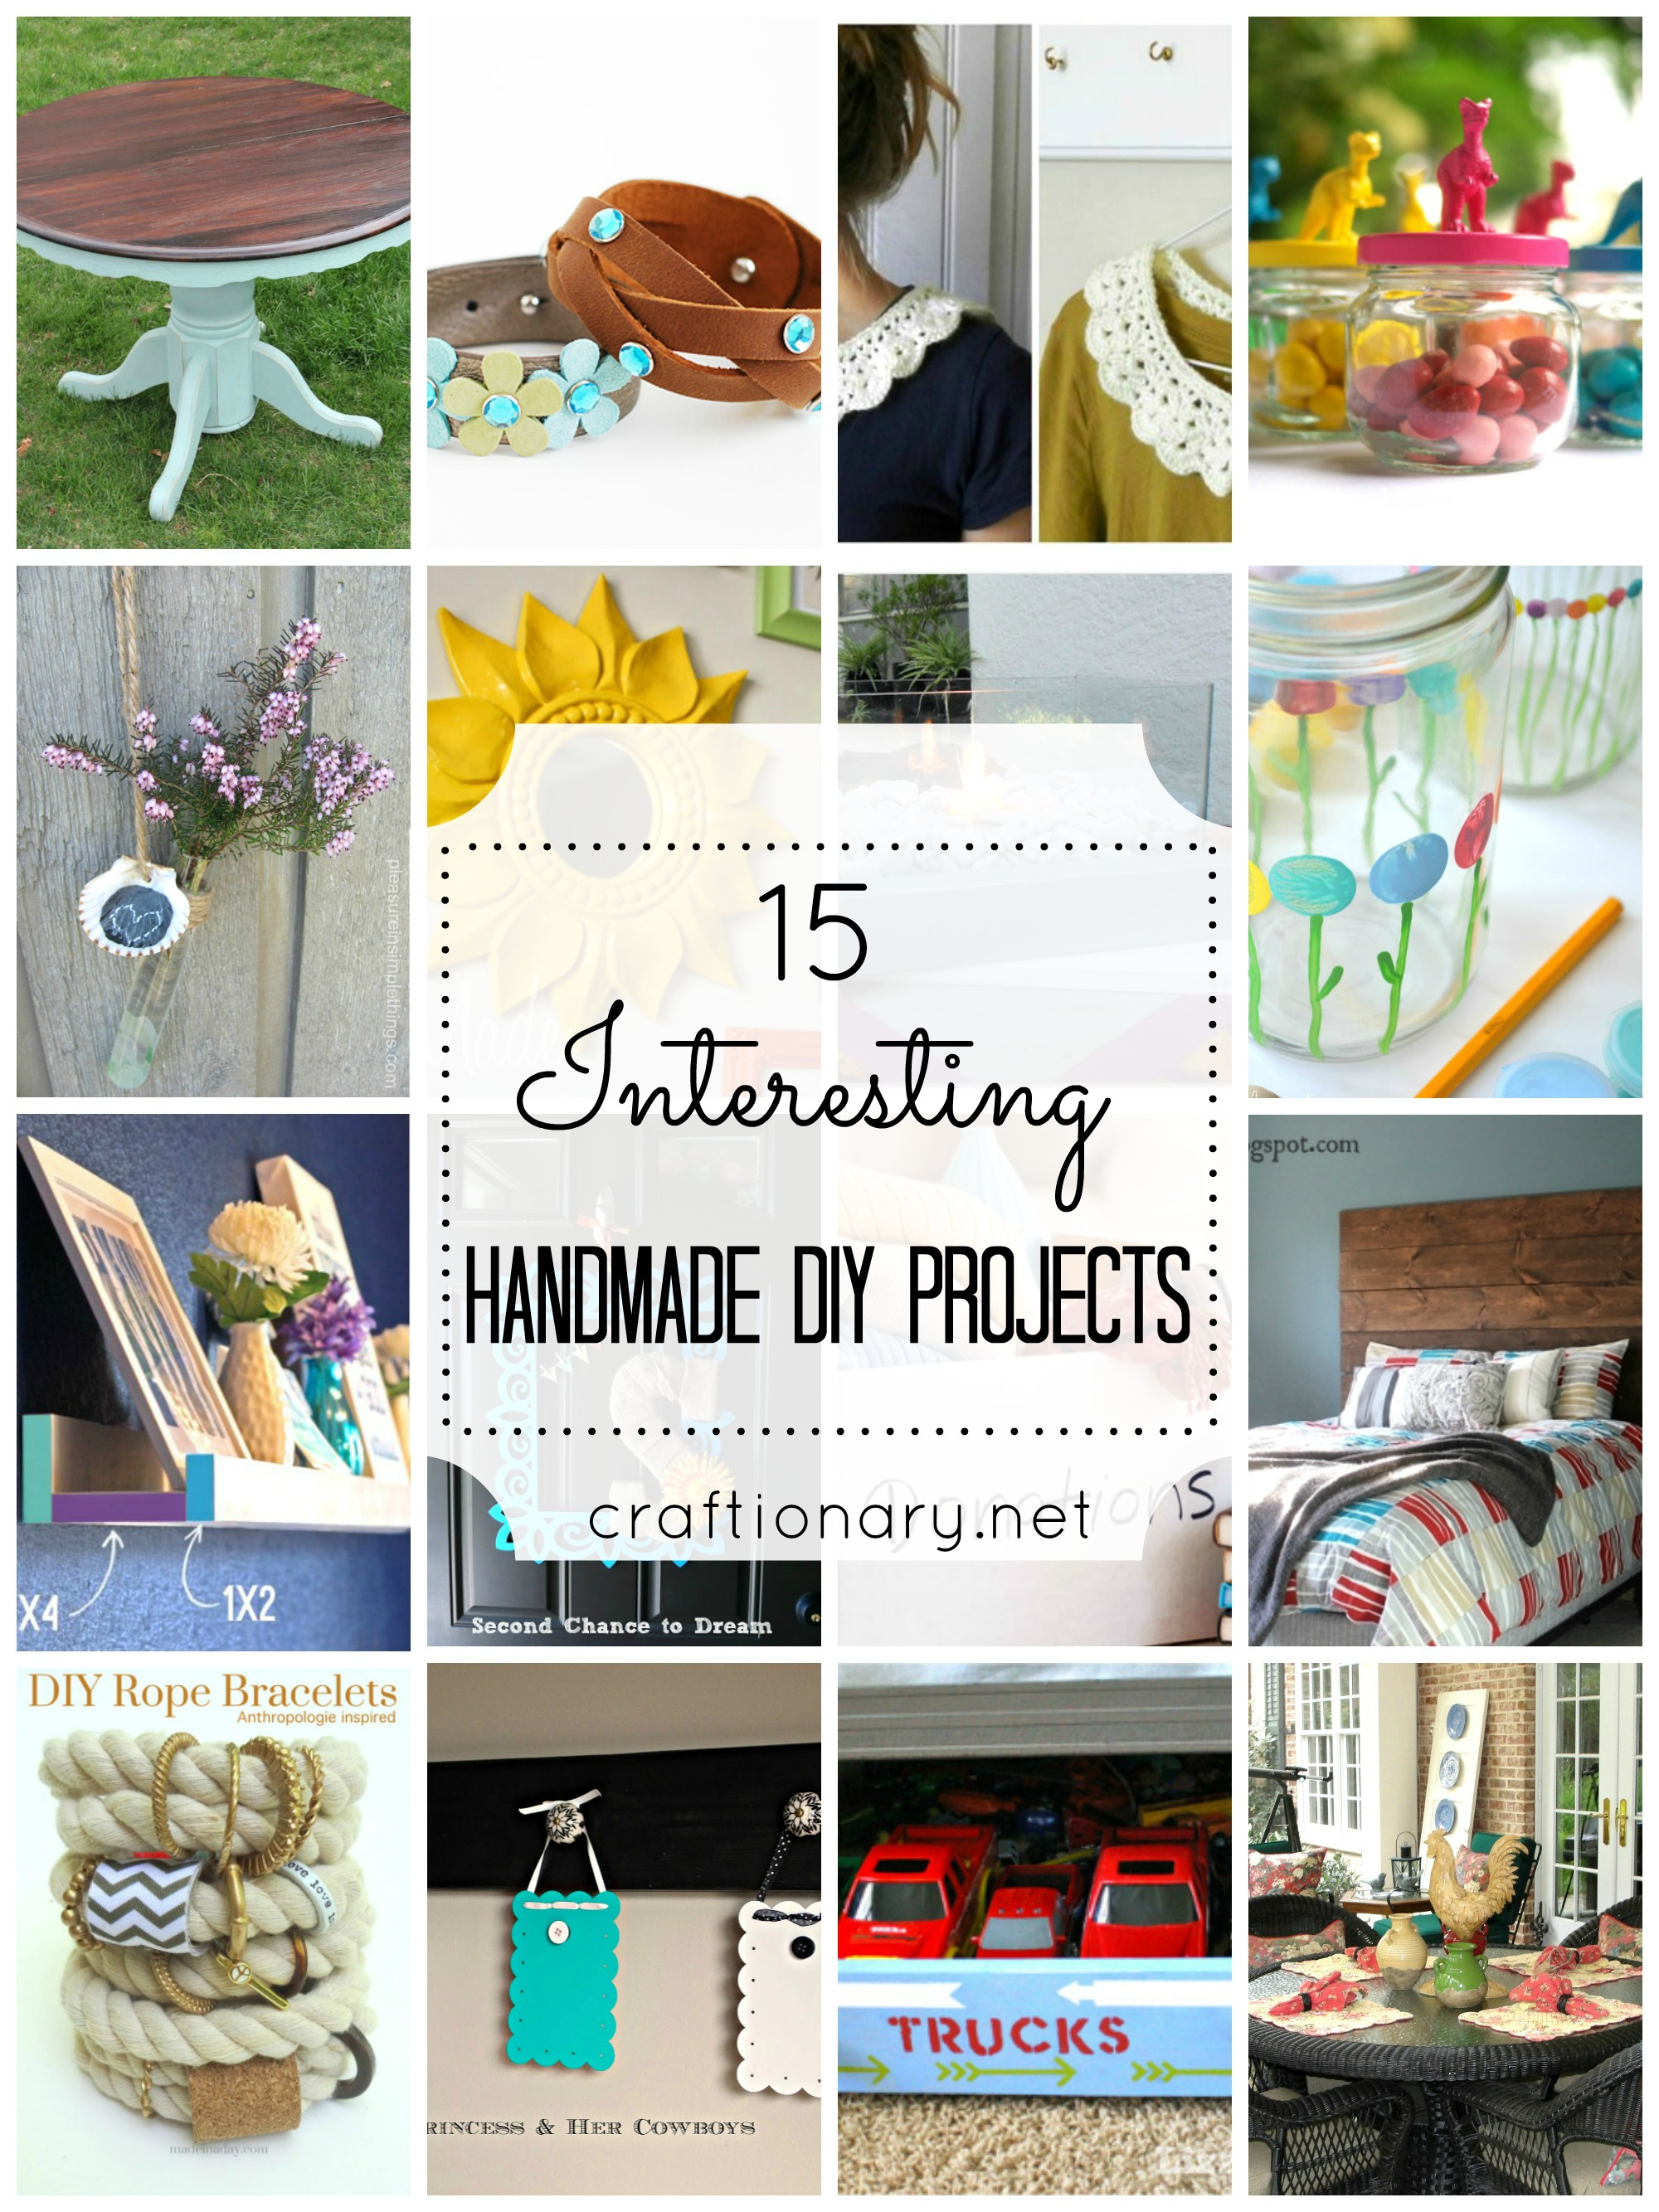 15 Interesting Handmade DIY Projects